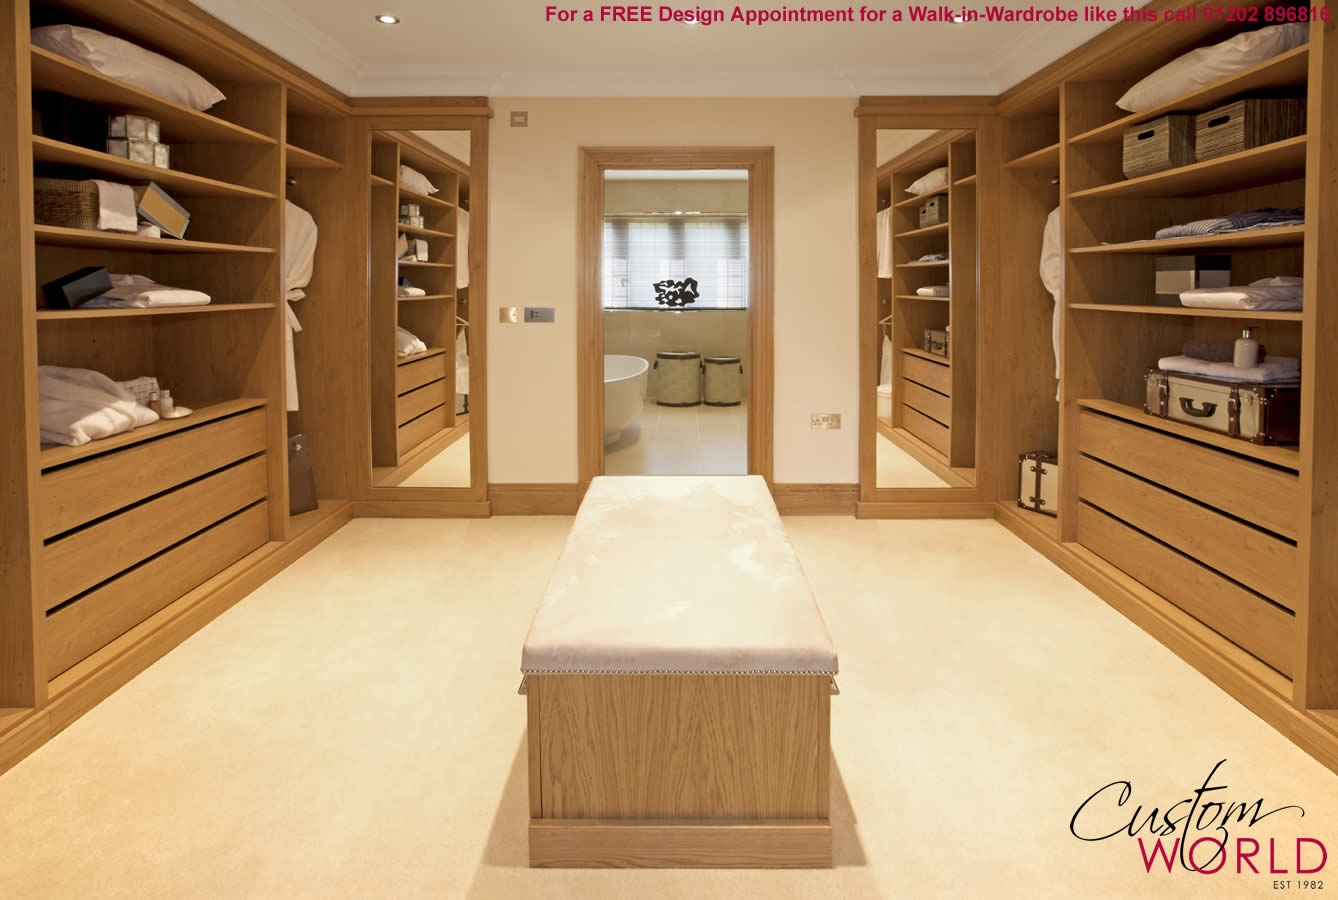 walk in wardrobes designs built walk wardrobes bespoke wardrobe designs GJXJRTD